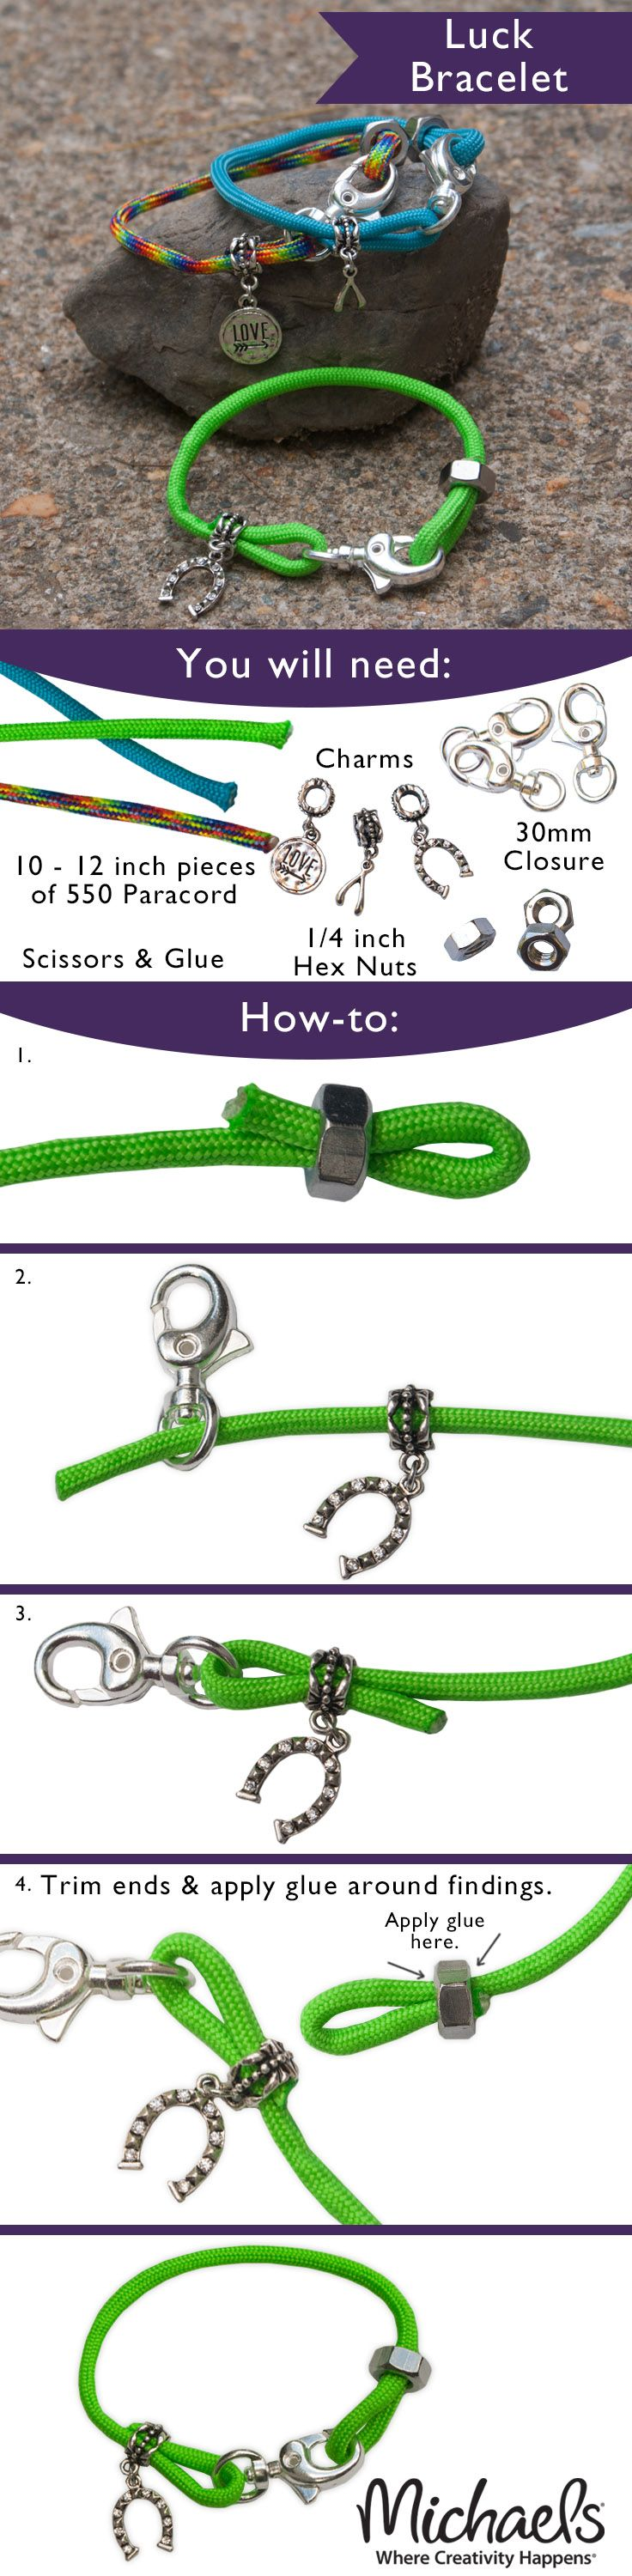 These DIY Paracord Luck Bracelets are so easy to make, you can create them in several colors to stack